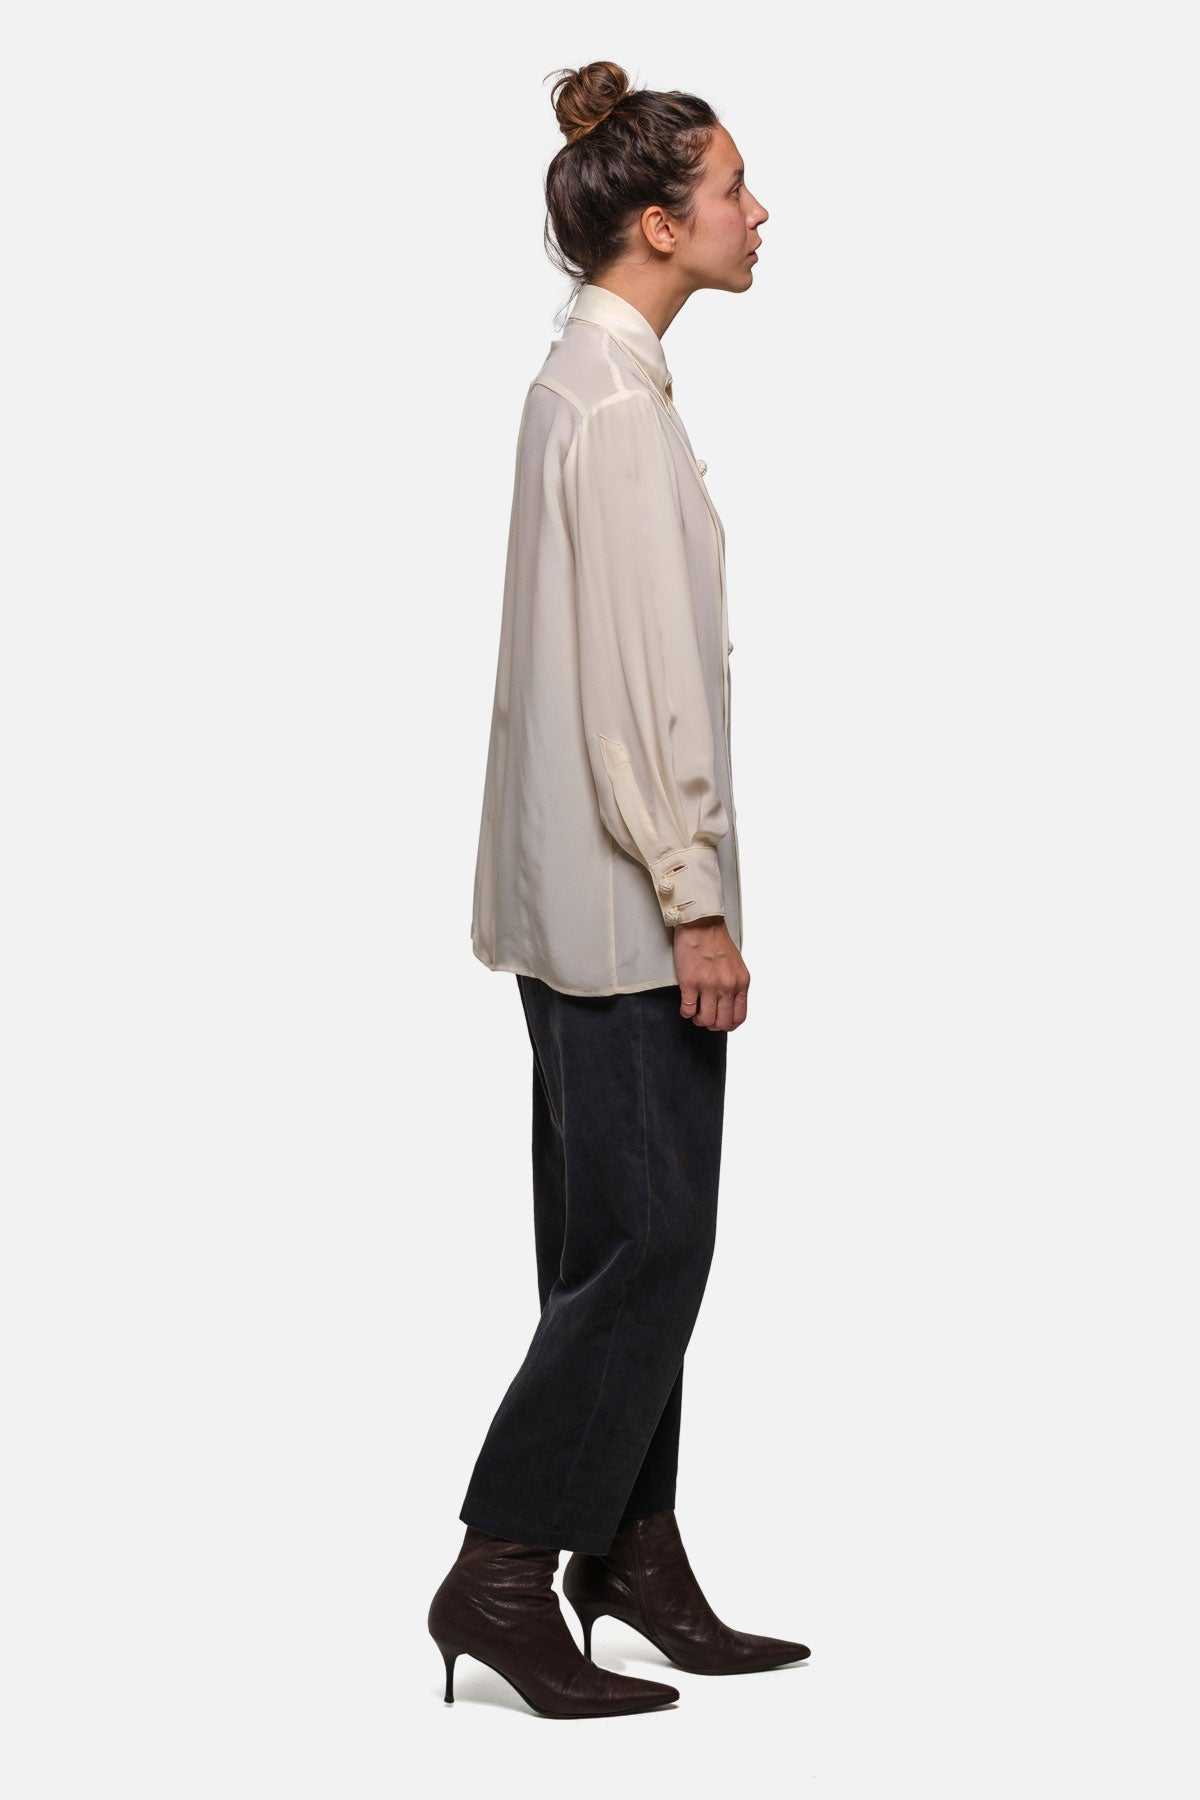 DRE BLOUSE IN IVORY SILK - Fortune Goods